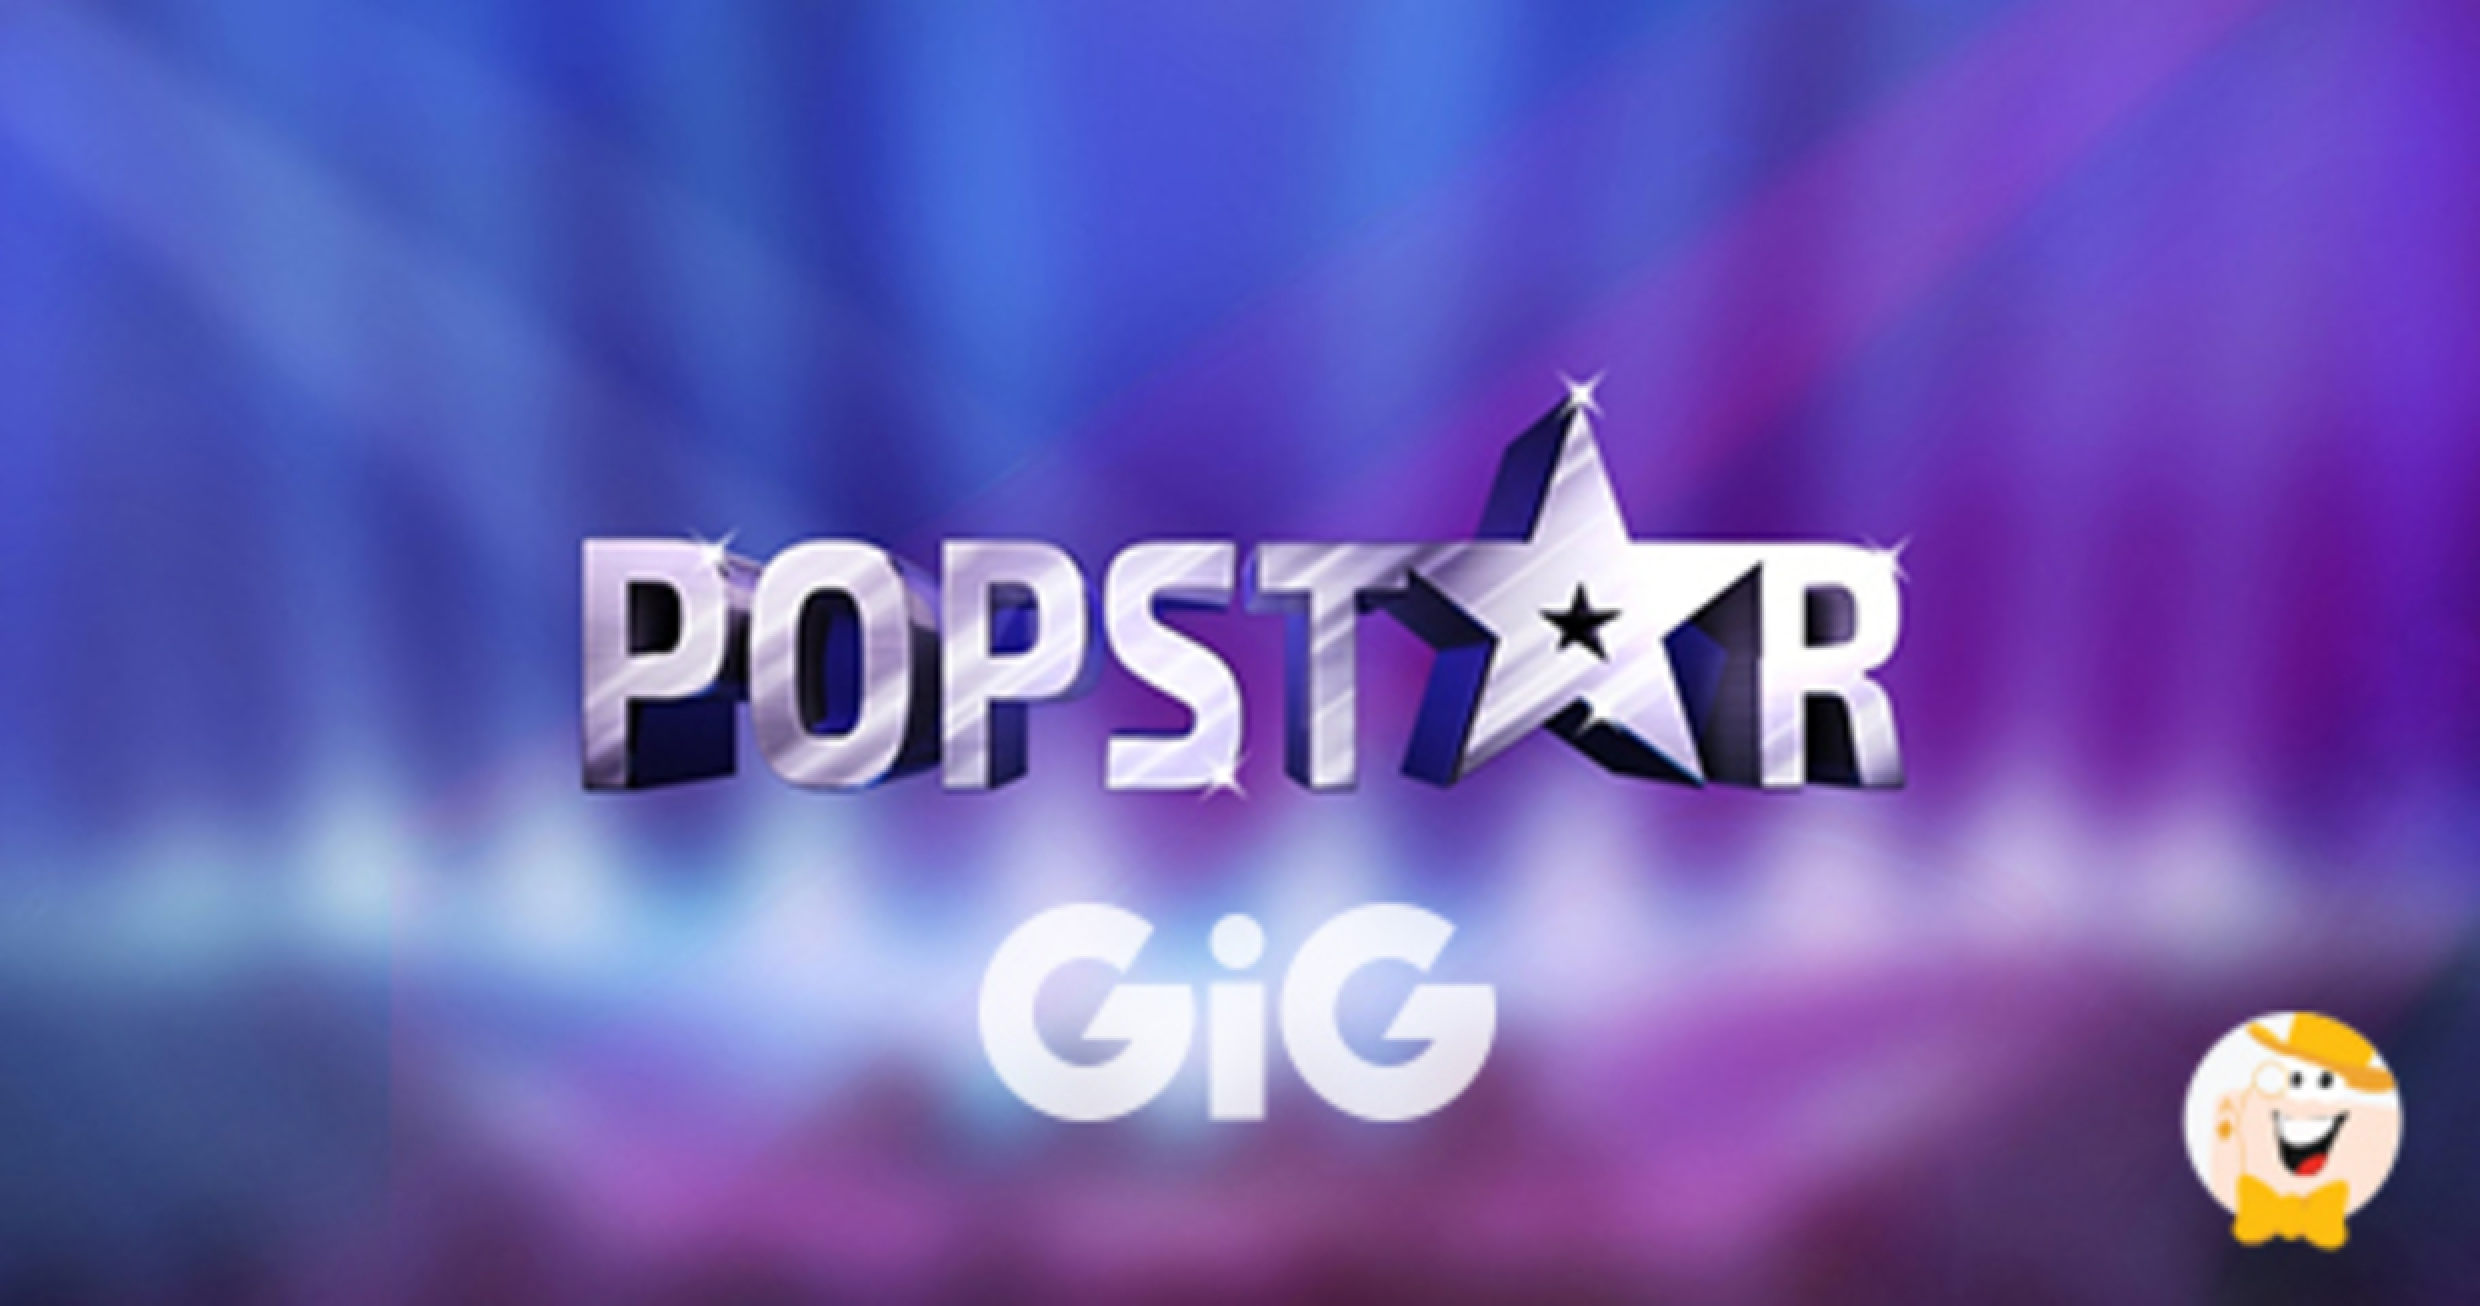 The Popstar Online Slot Demo Game by Spearhead Studios